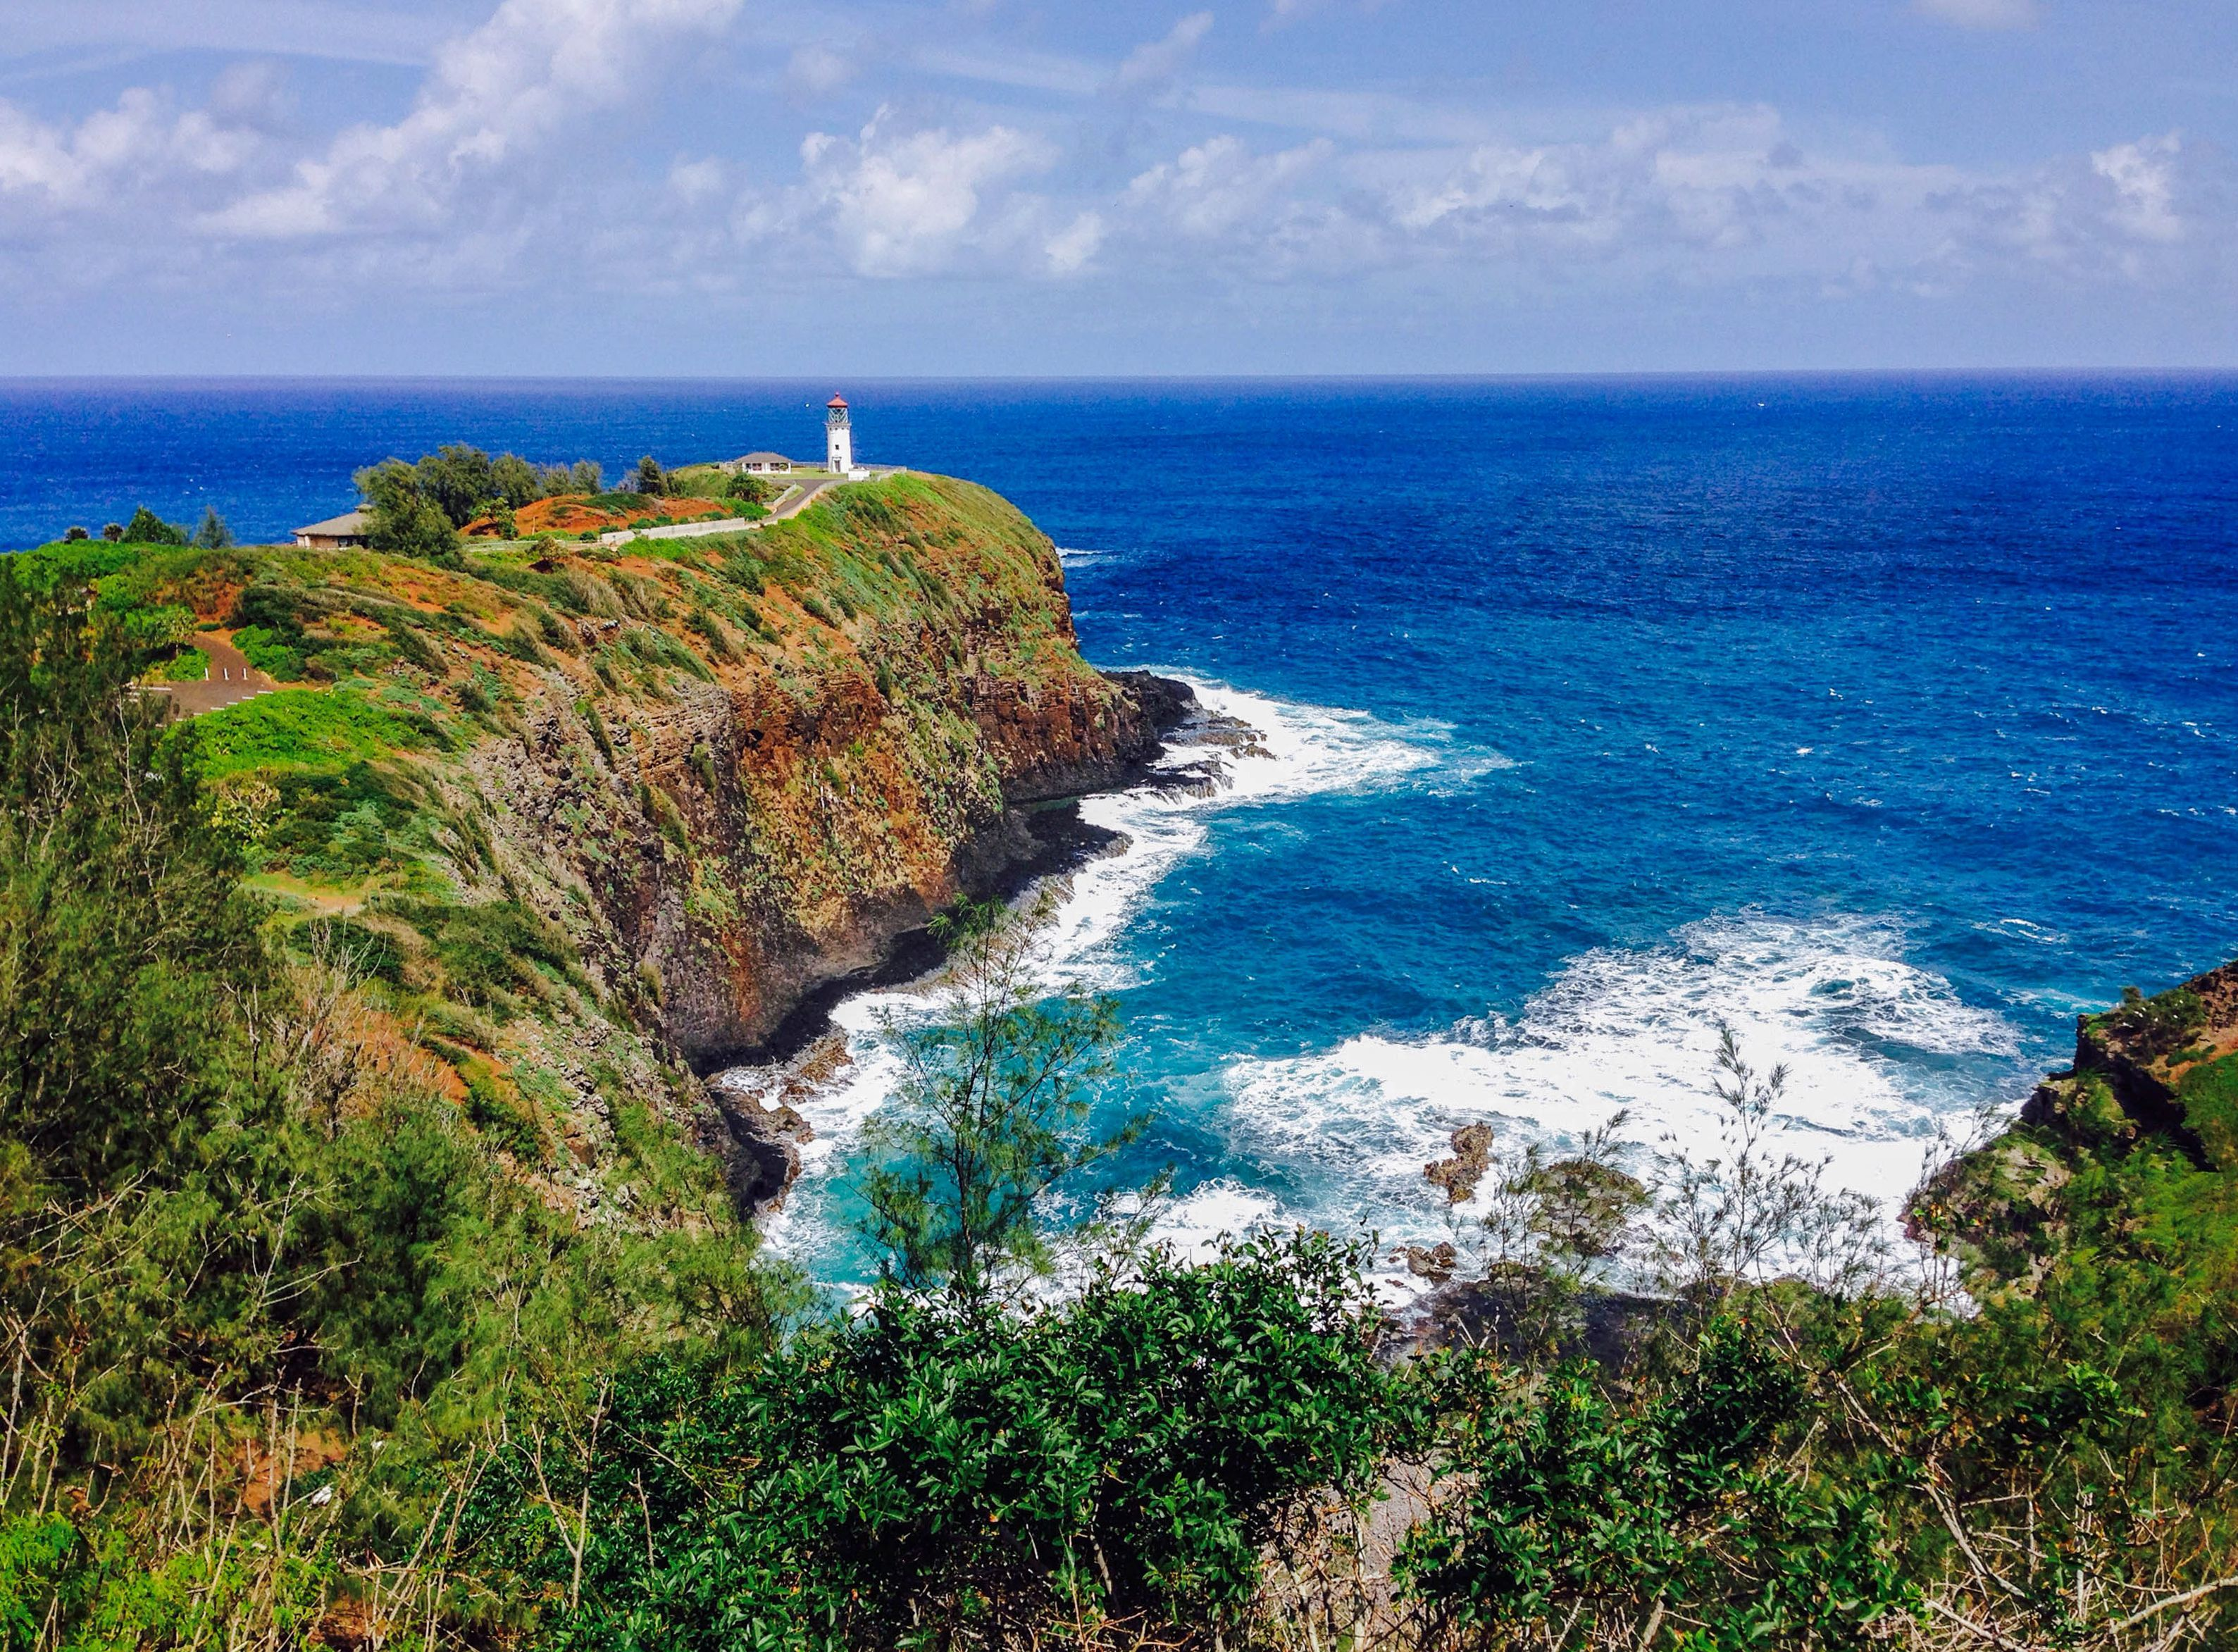 How to Choose the Best Time to Visit Hawaii